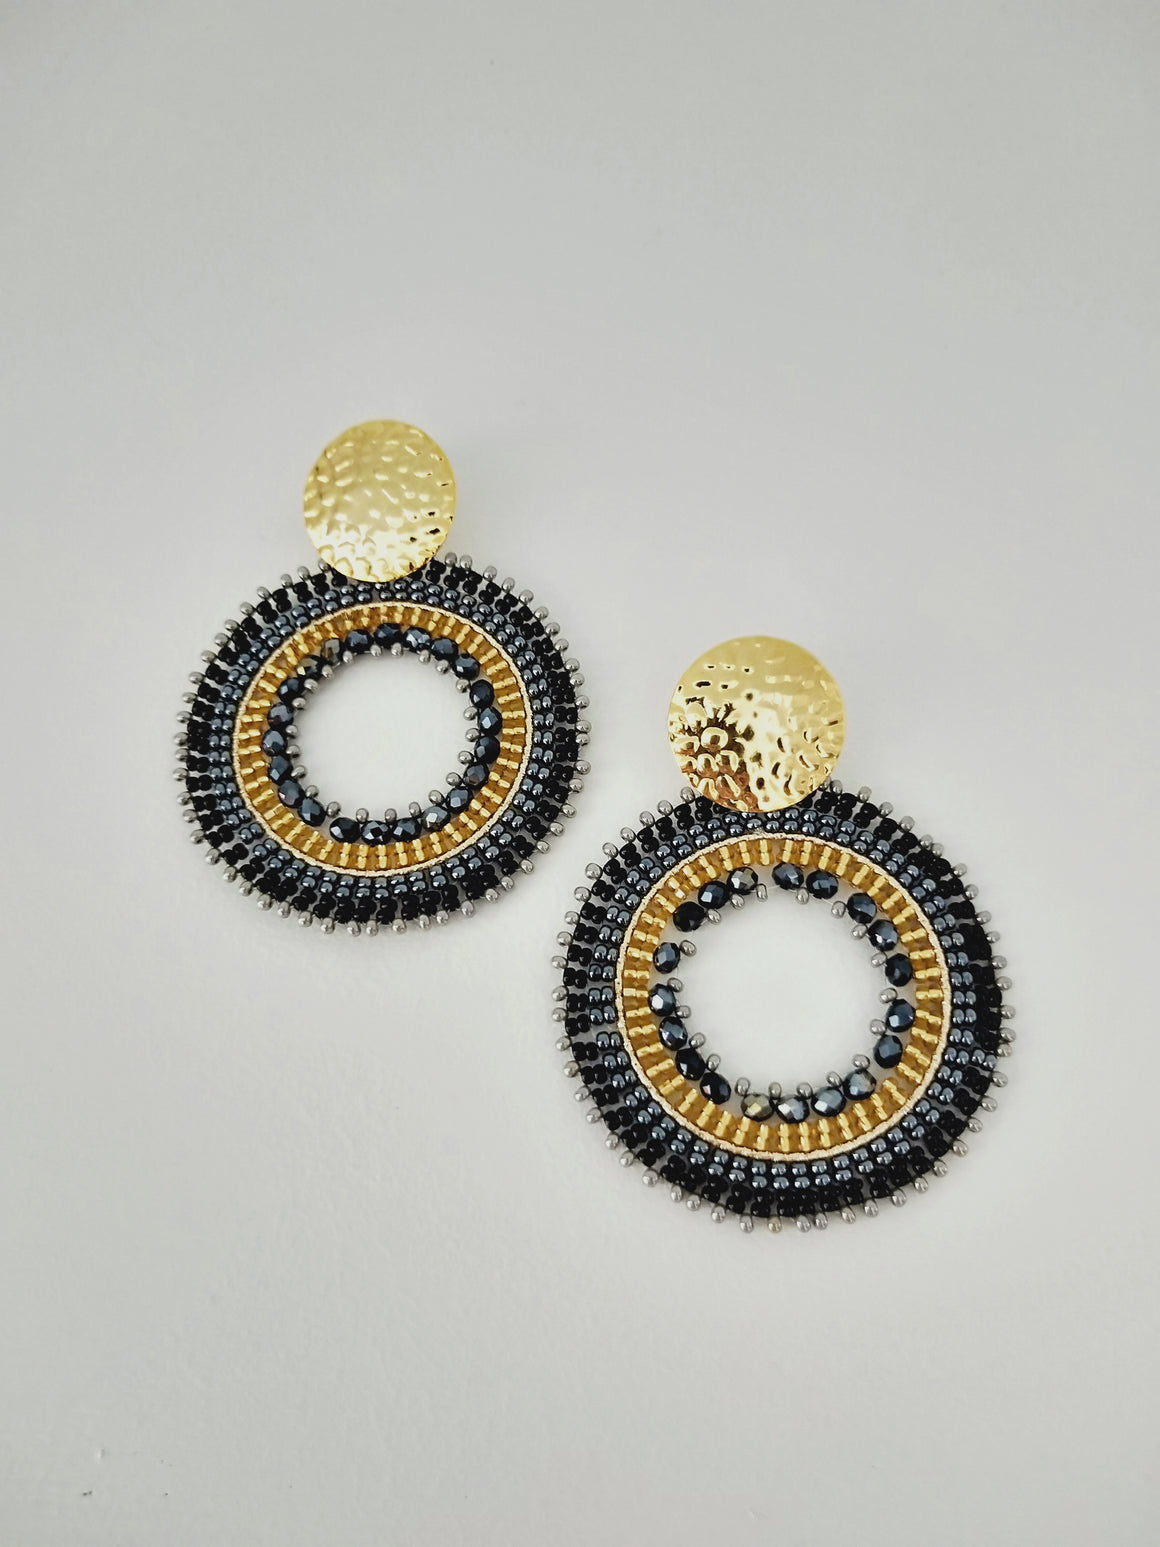 Half Mandala-Earrings-Colombian Label Co.